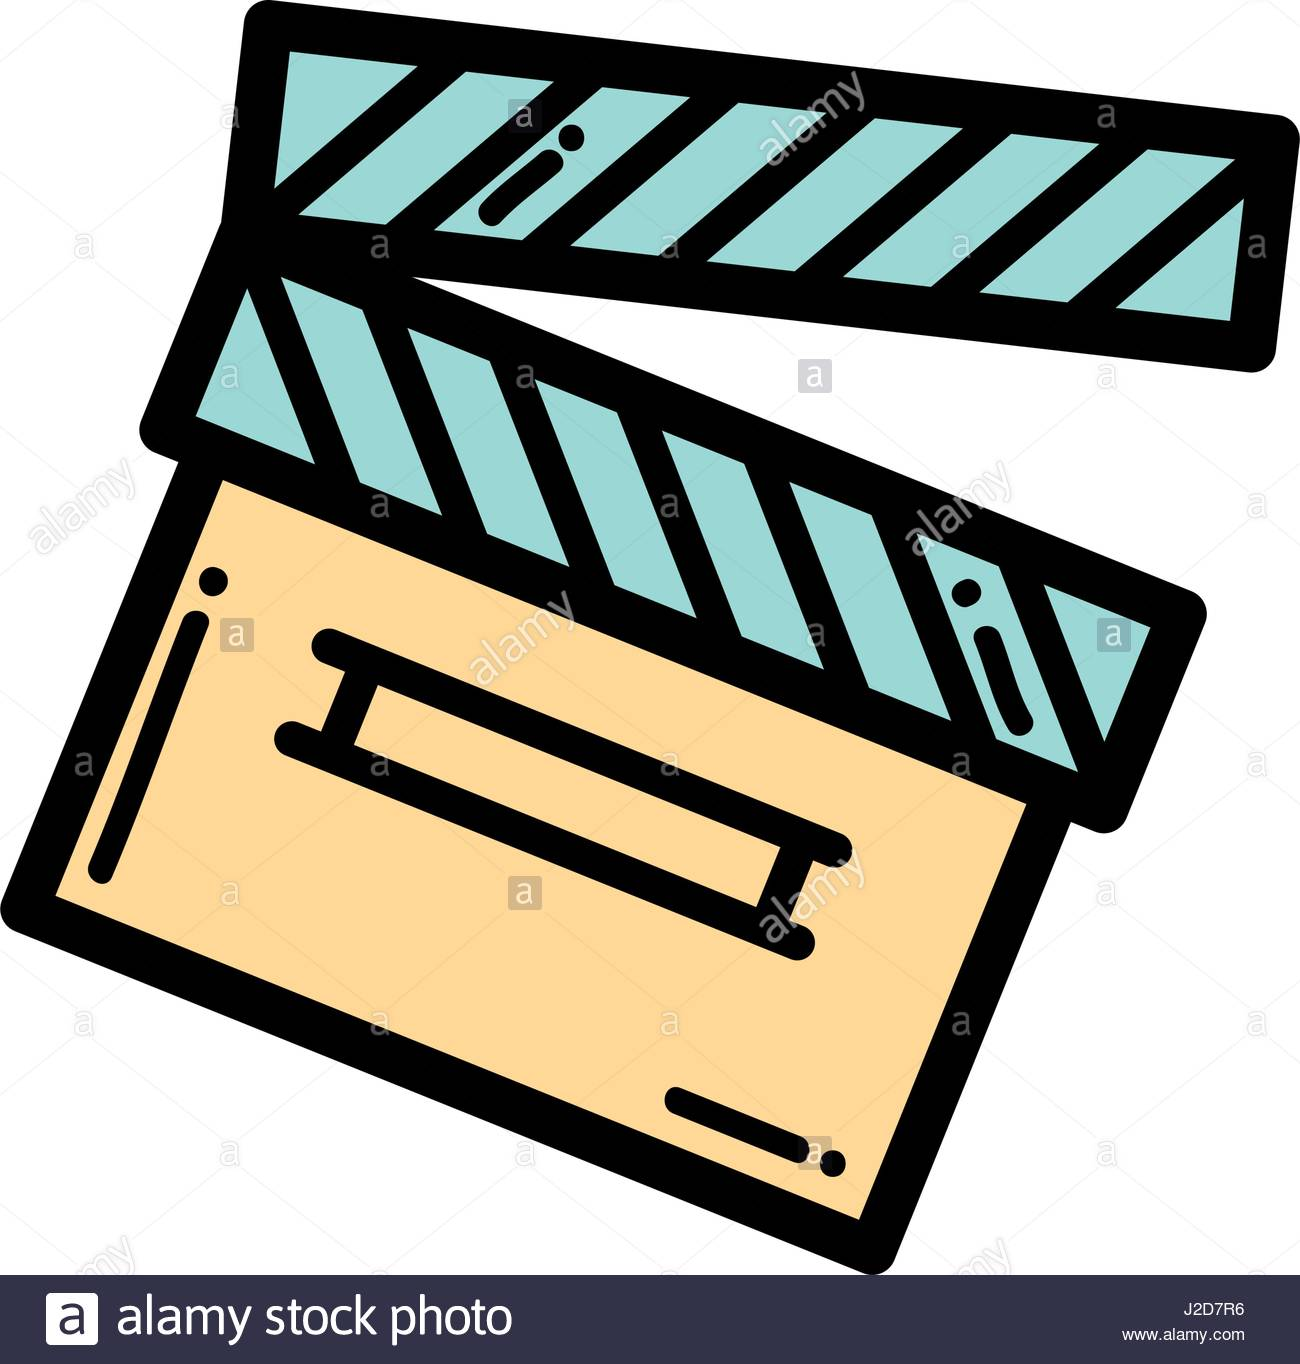 1300x1364 Clapper Board Action Video Filmstrips Stock Vector Art